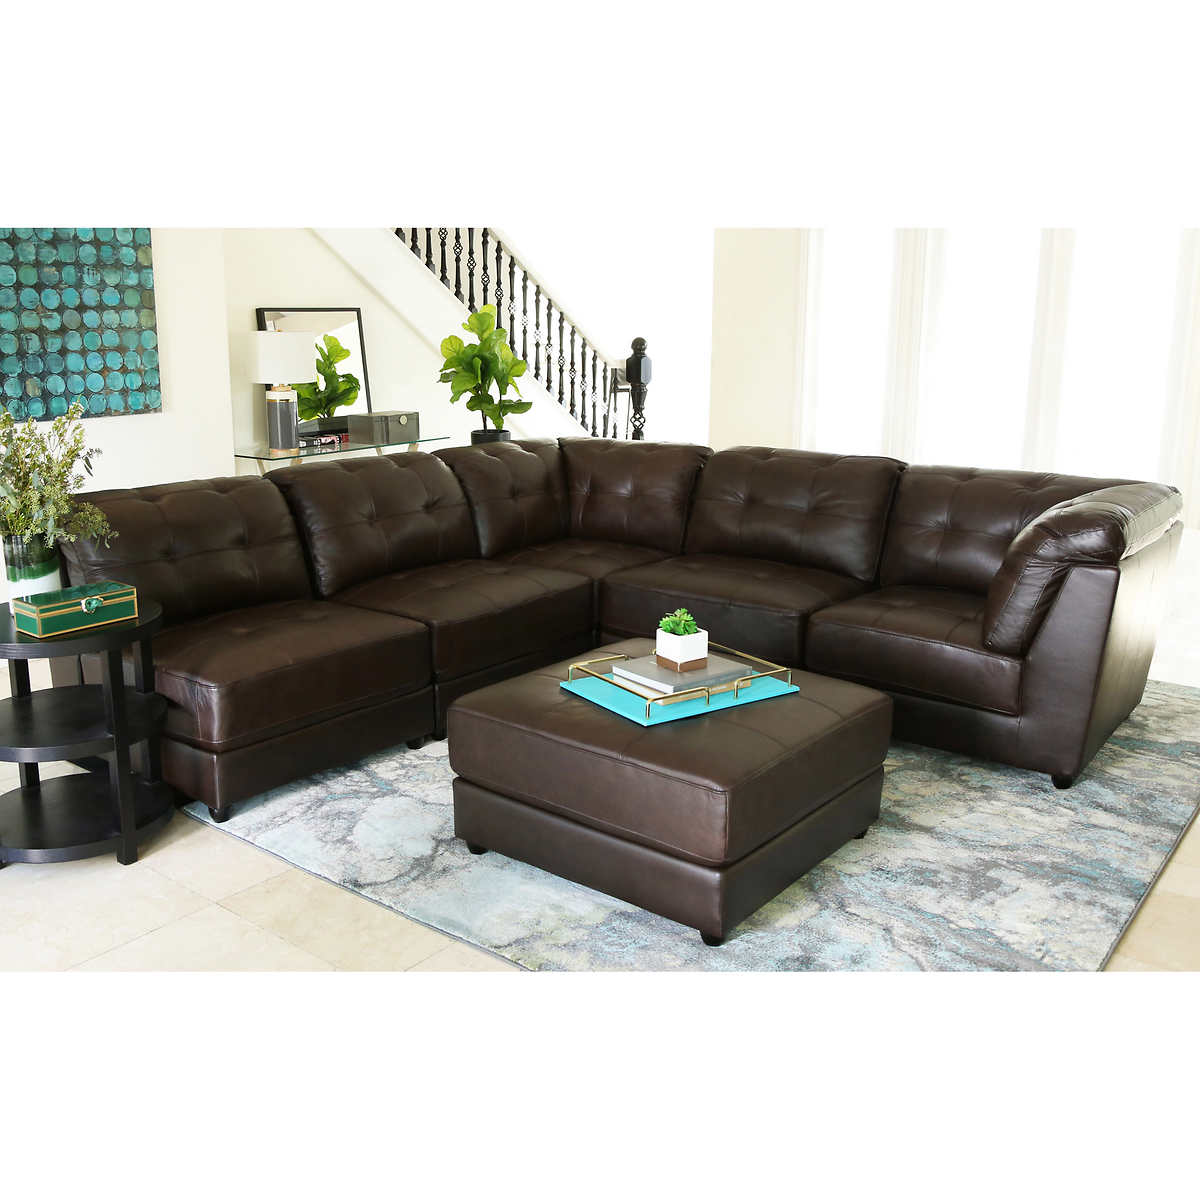 leather sofas sectionals costco erica 6 piece top grain leather modular sectional living room set brown